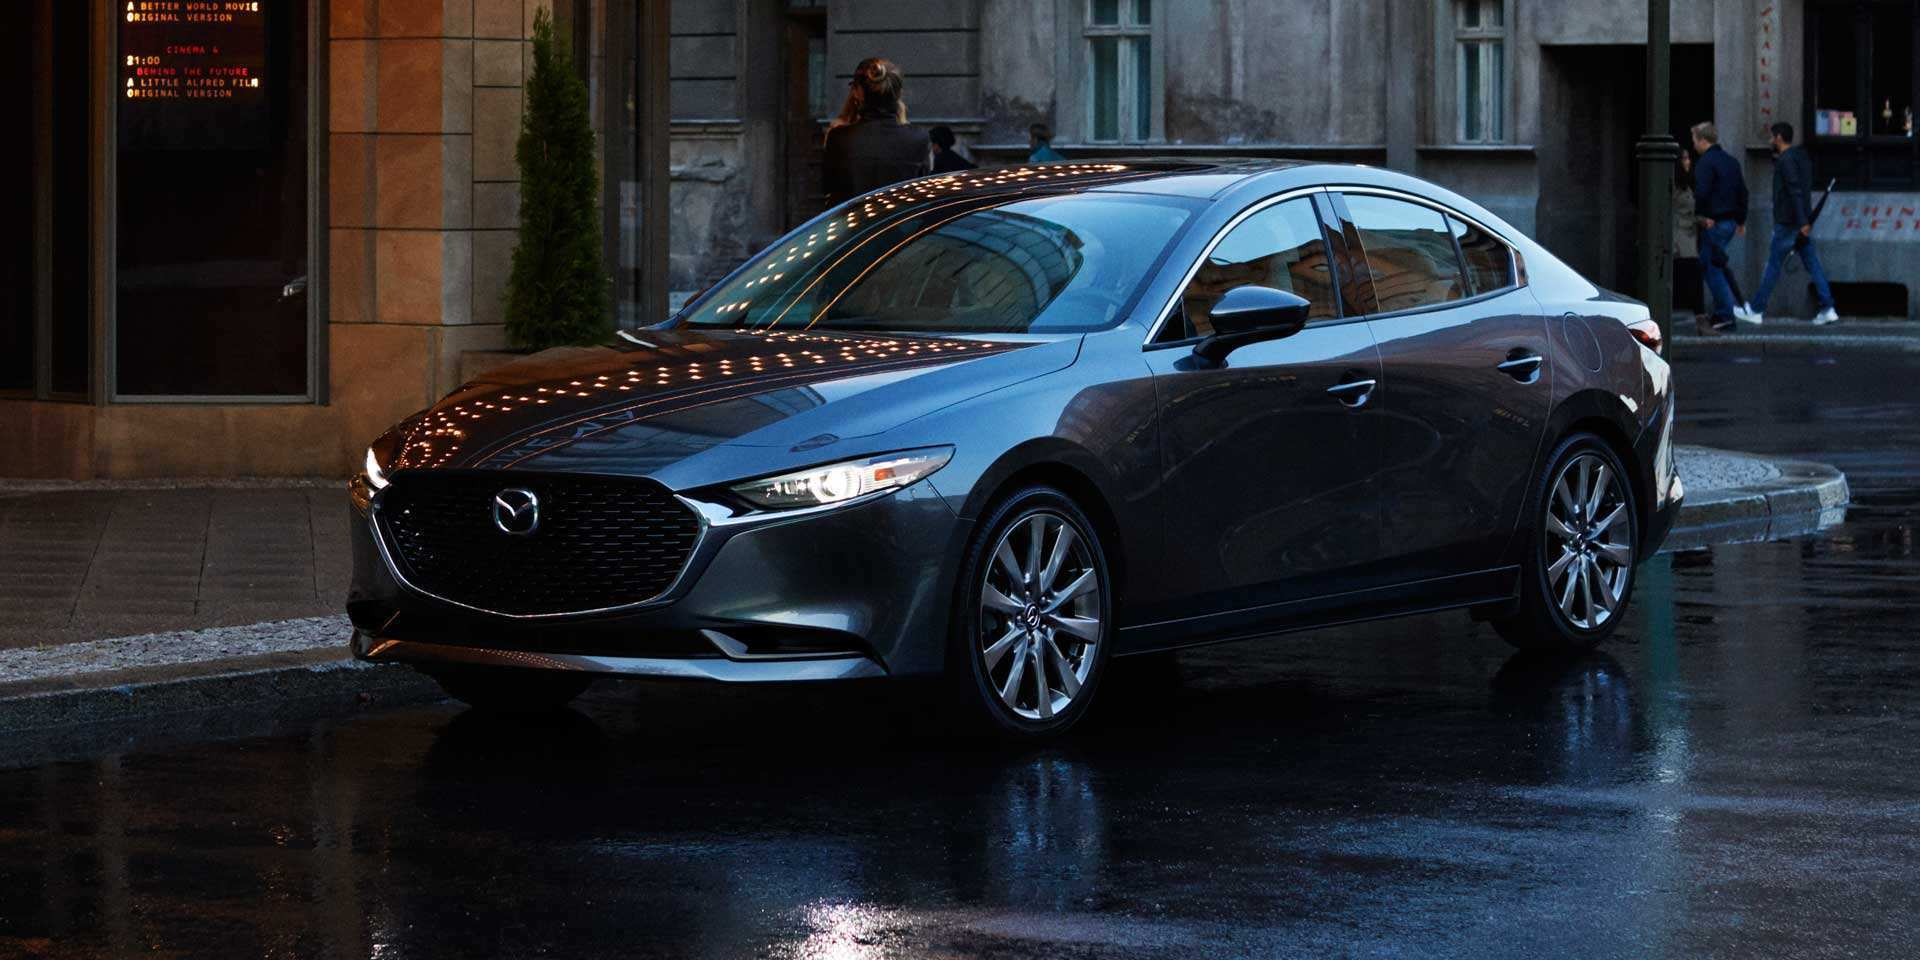 60 Best 2019 Mazda 3 Review